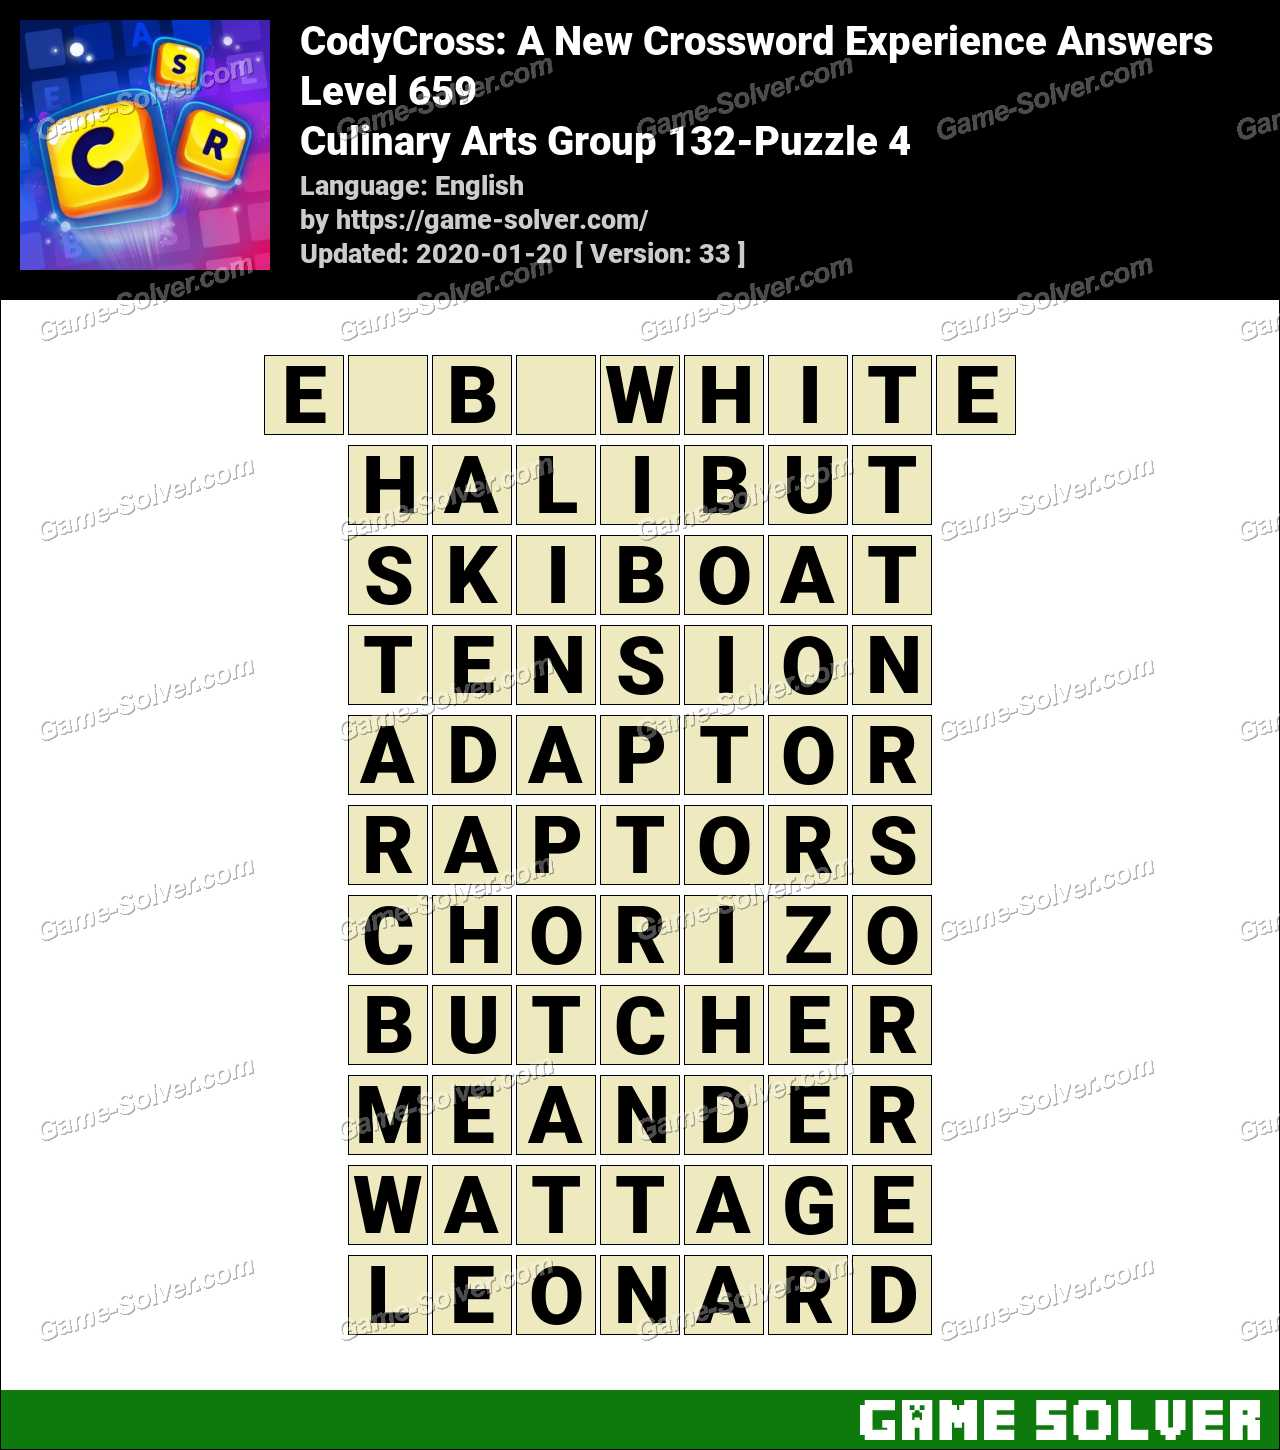 CodyCross Culinary Arts Group 132-Puzzle 4 Answers